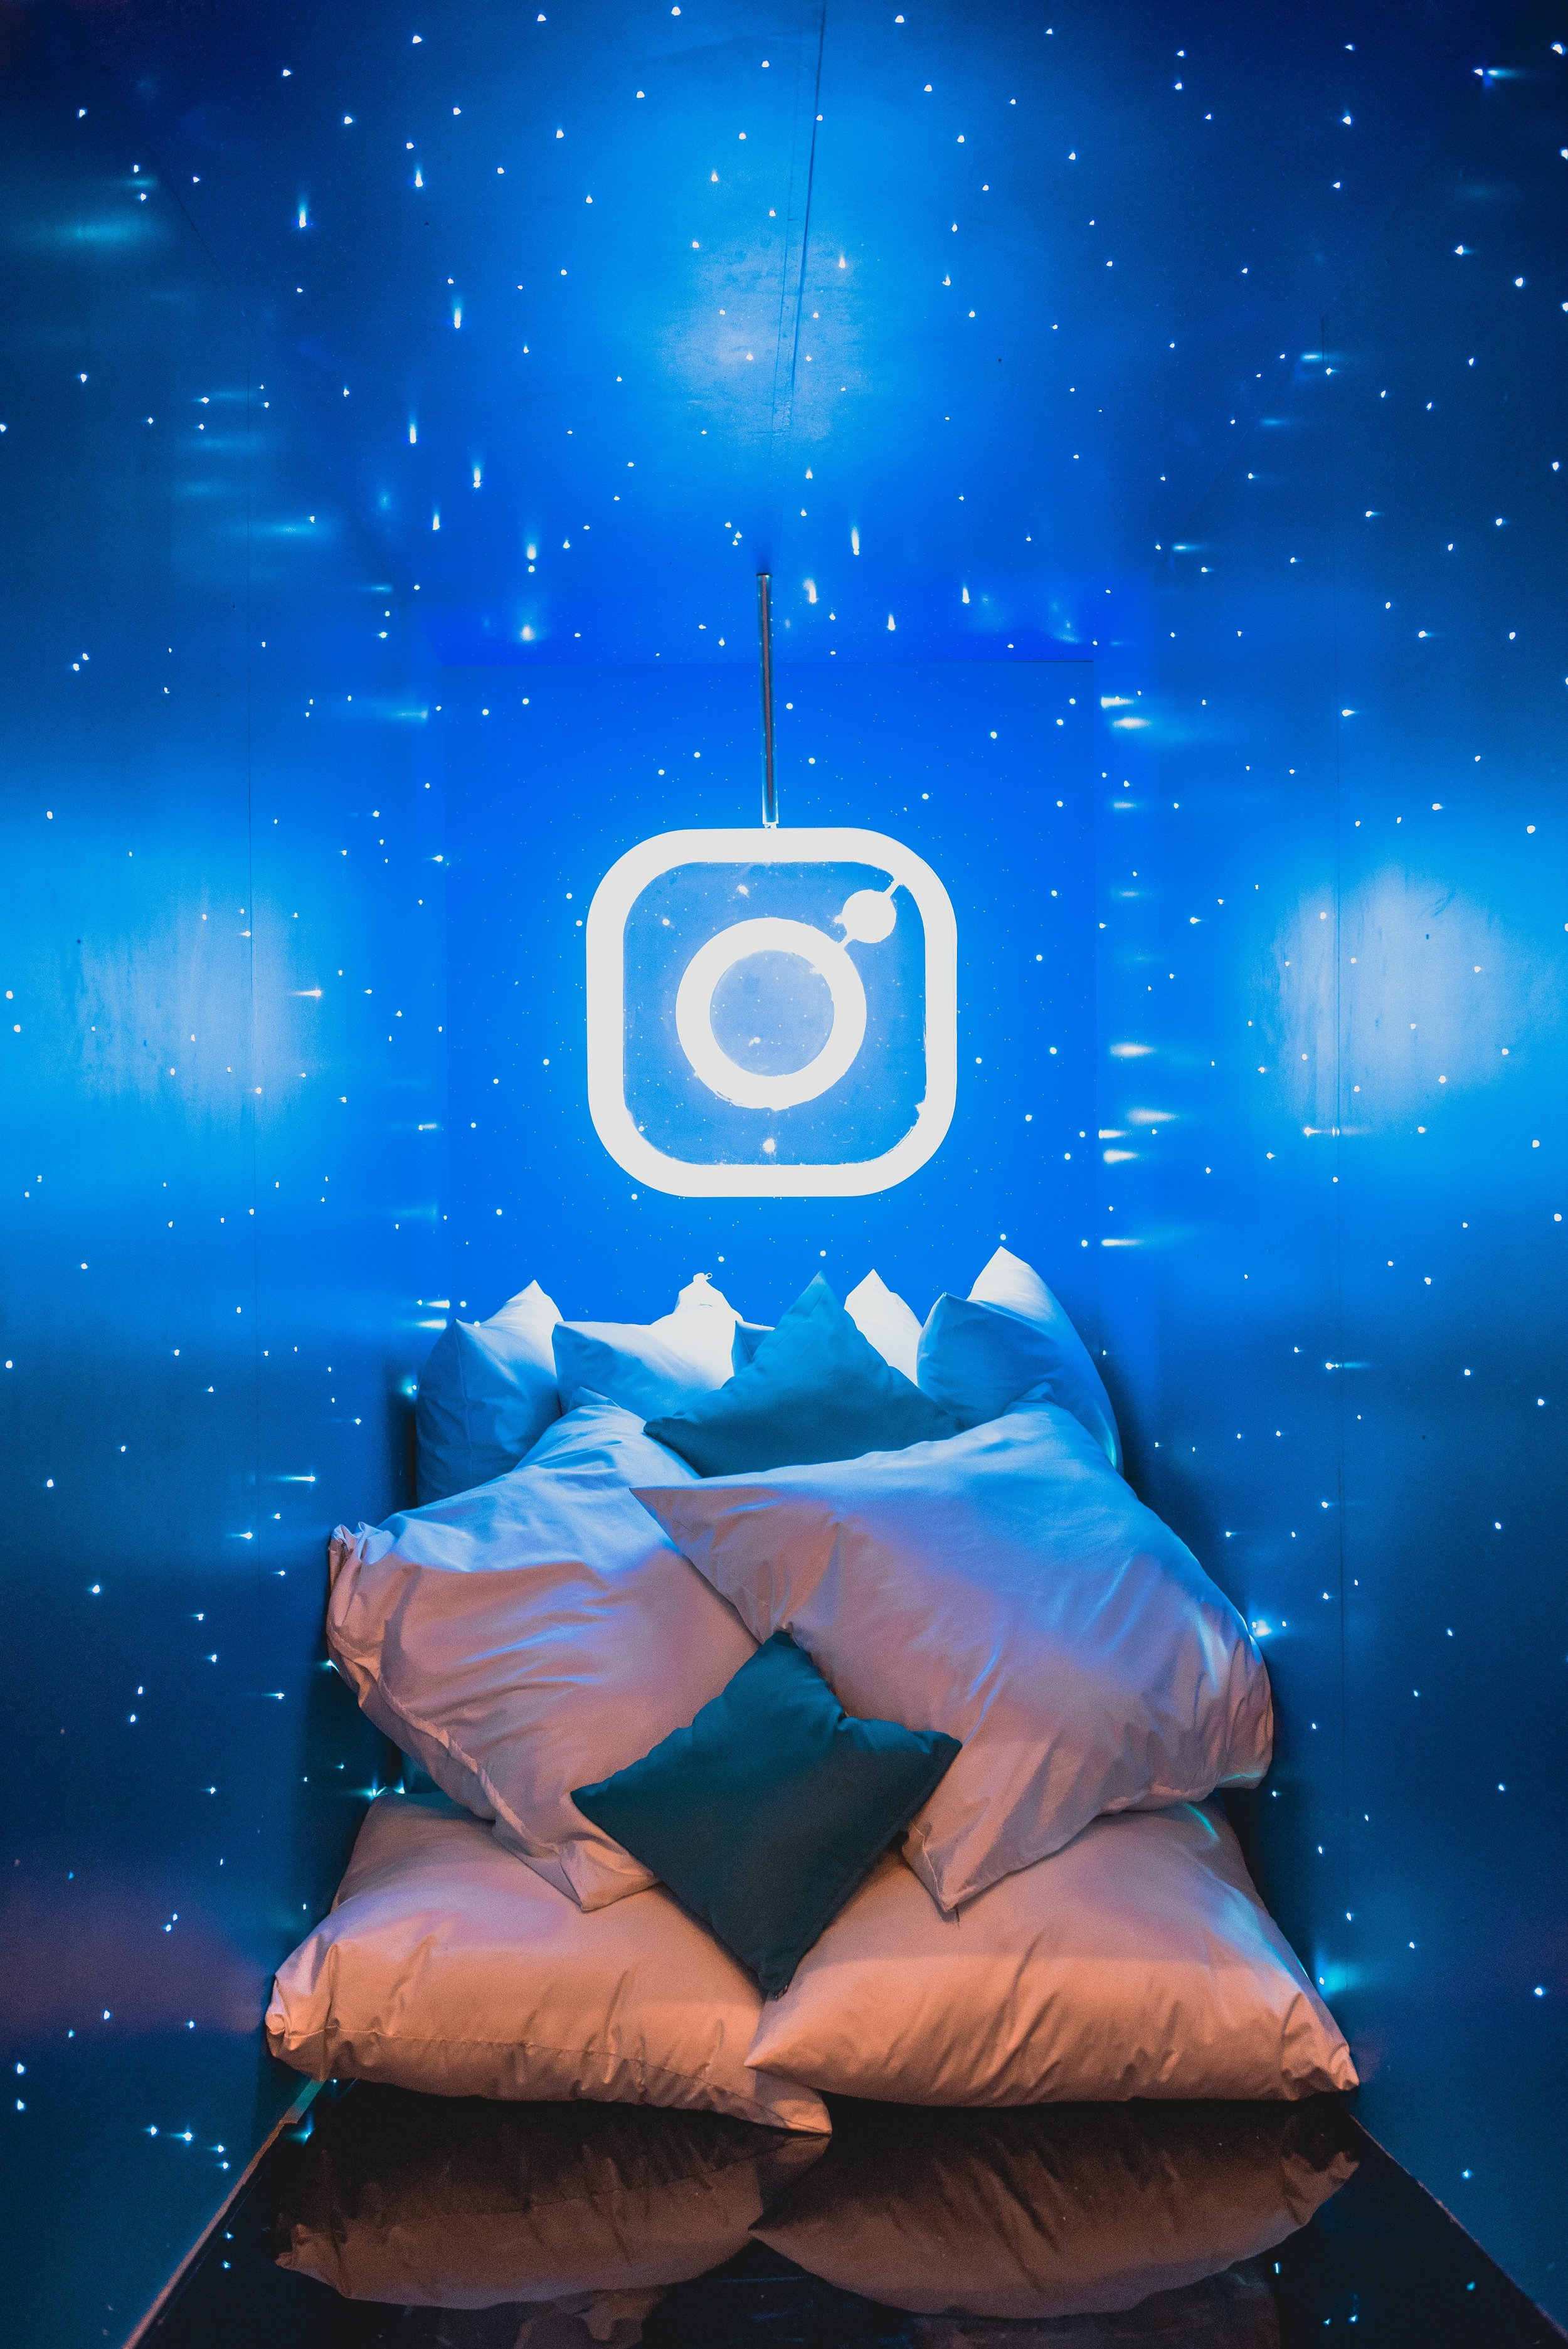 How To Get Unlimited Instagram Followers With Only $1.80 Of Your Time! | chrisryankingston.com